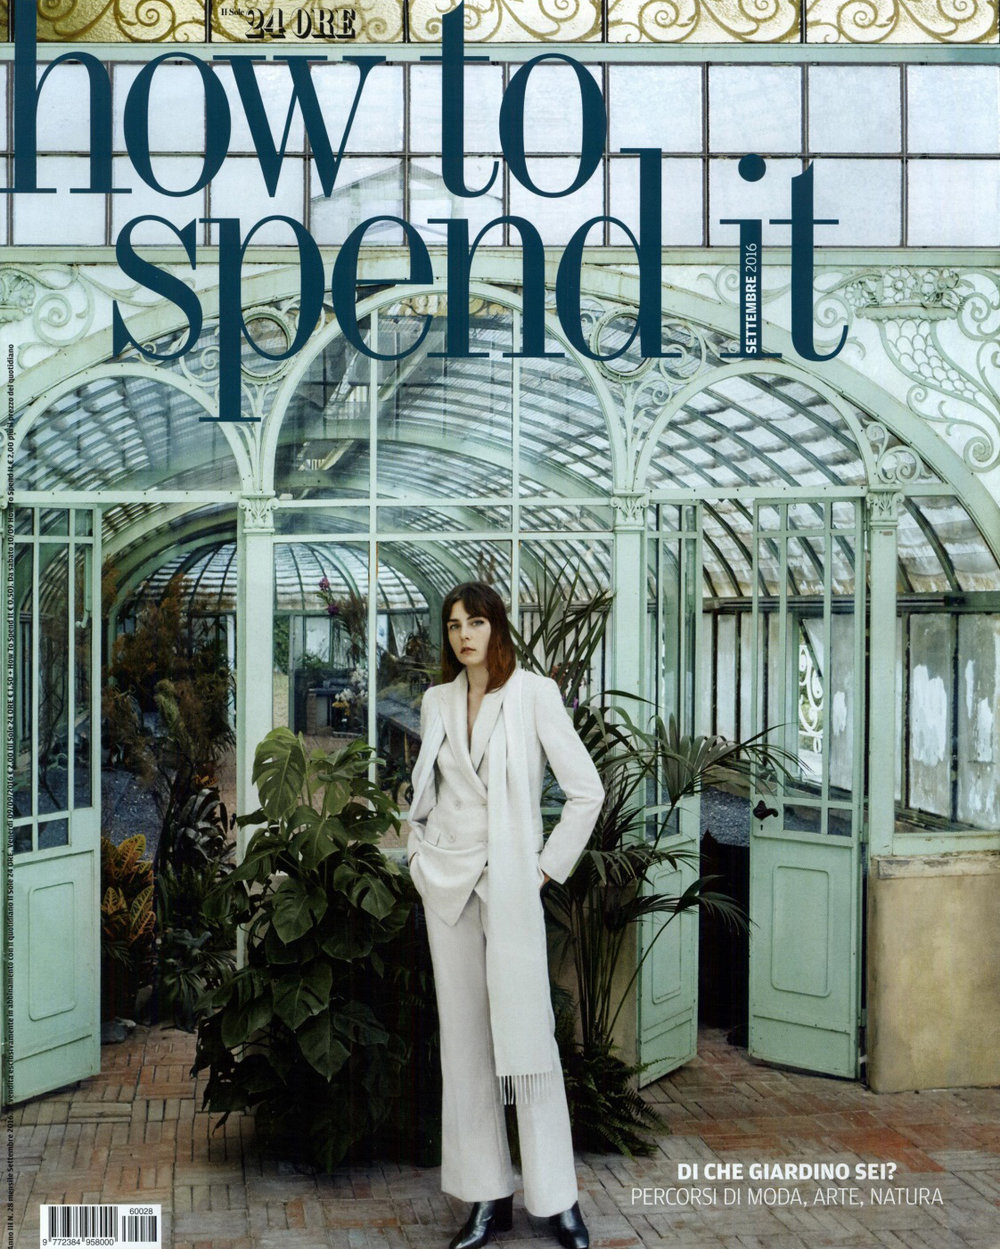 FT_HOW_TO_SPEND_IT_01.09.16_COVER.jpg